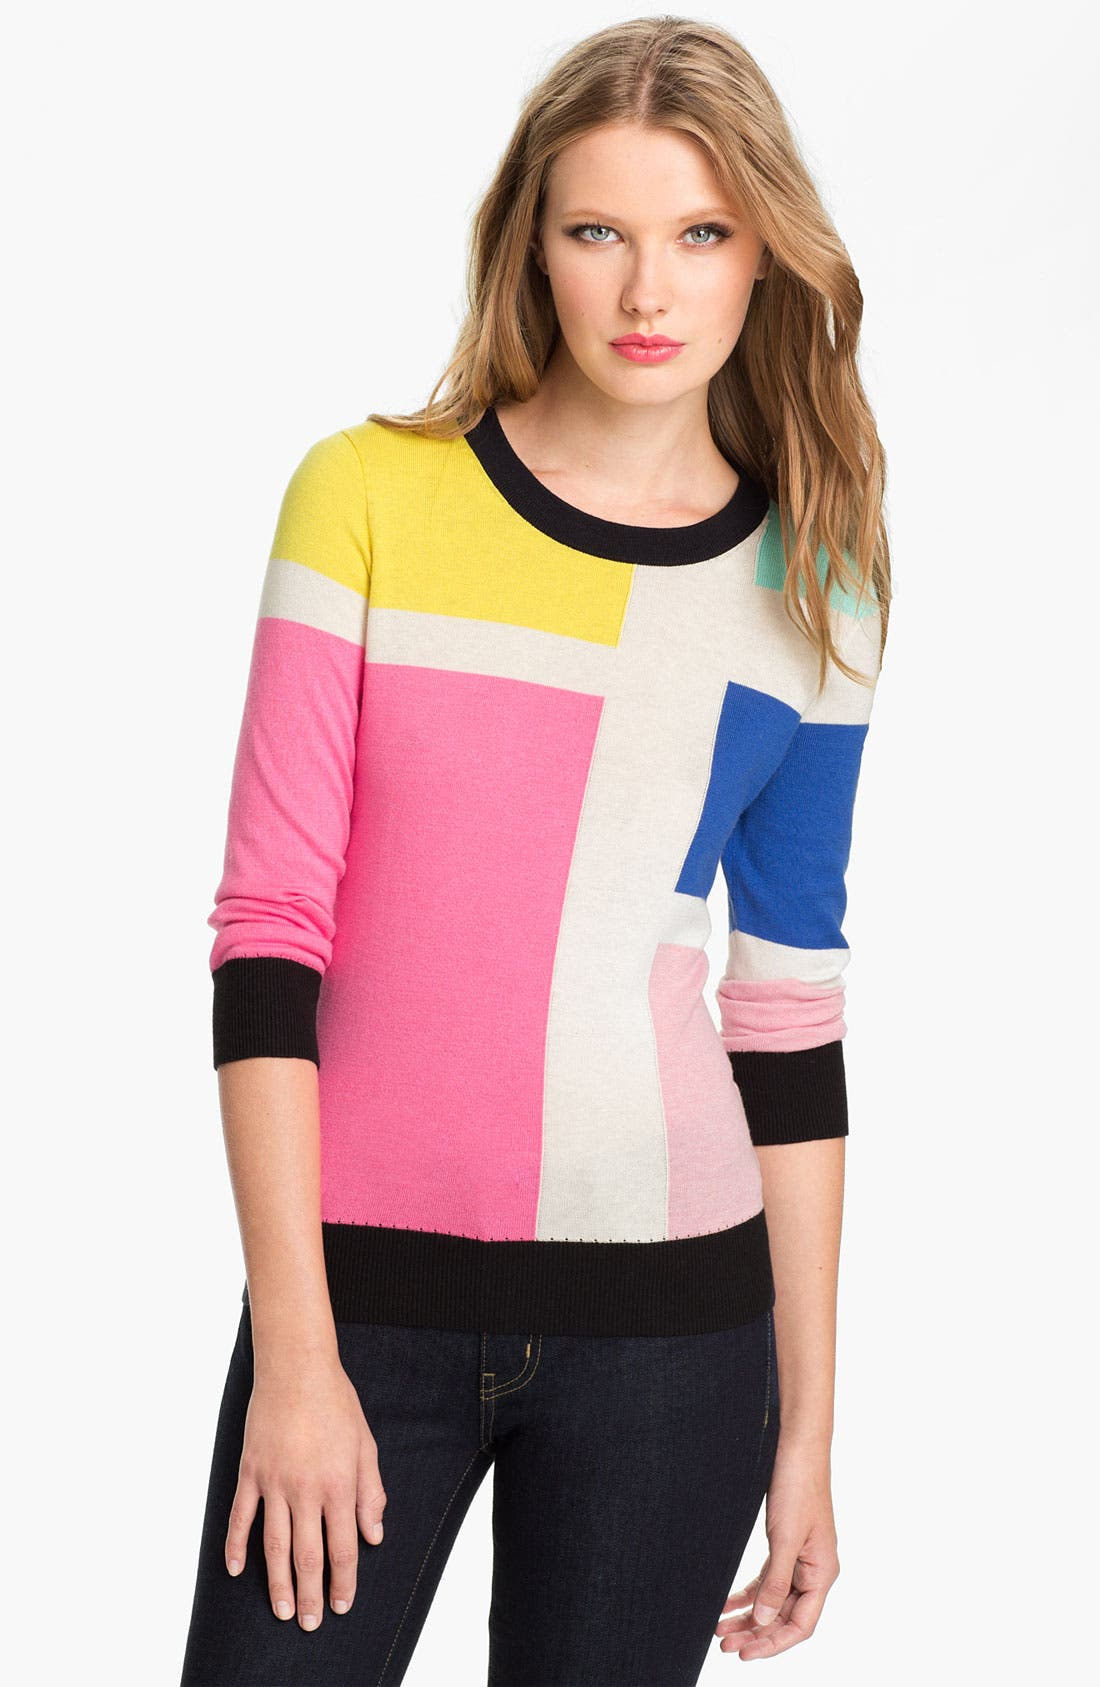 Alternate Image 1 Selected - kate spade new york 'meri' sweater